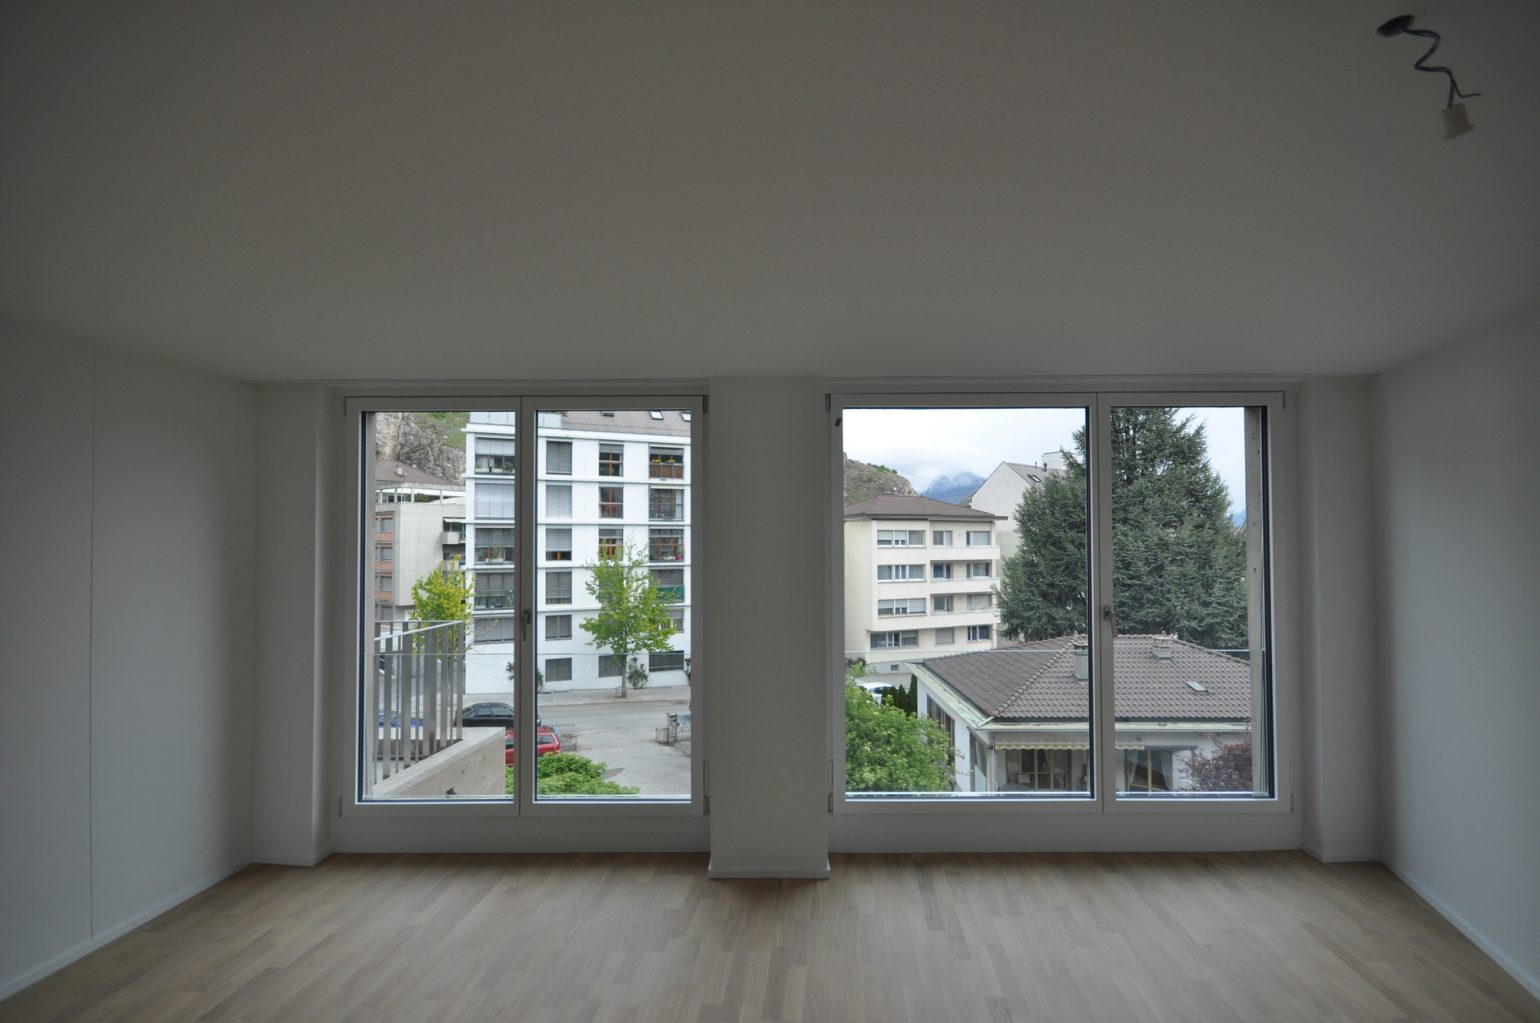 immeuble_dixence_sion_meyer_architecture_sion_04